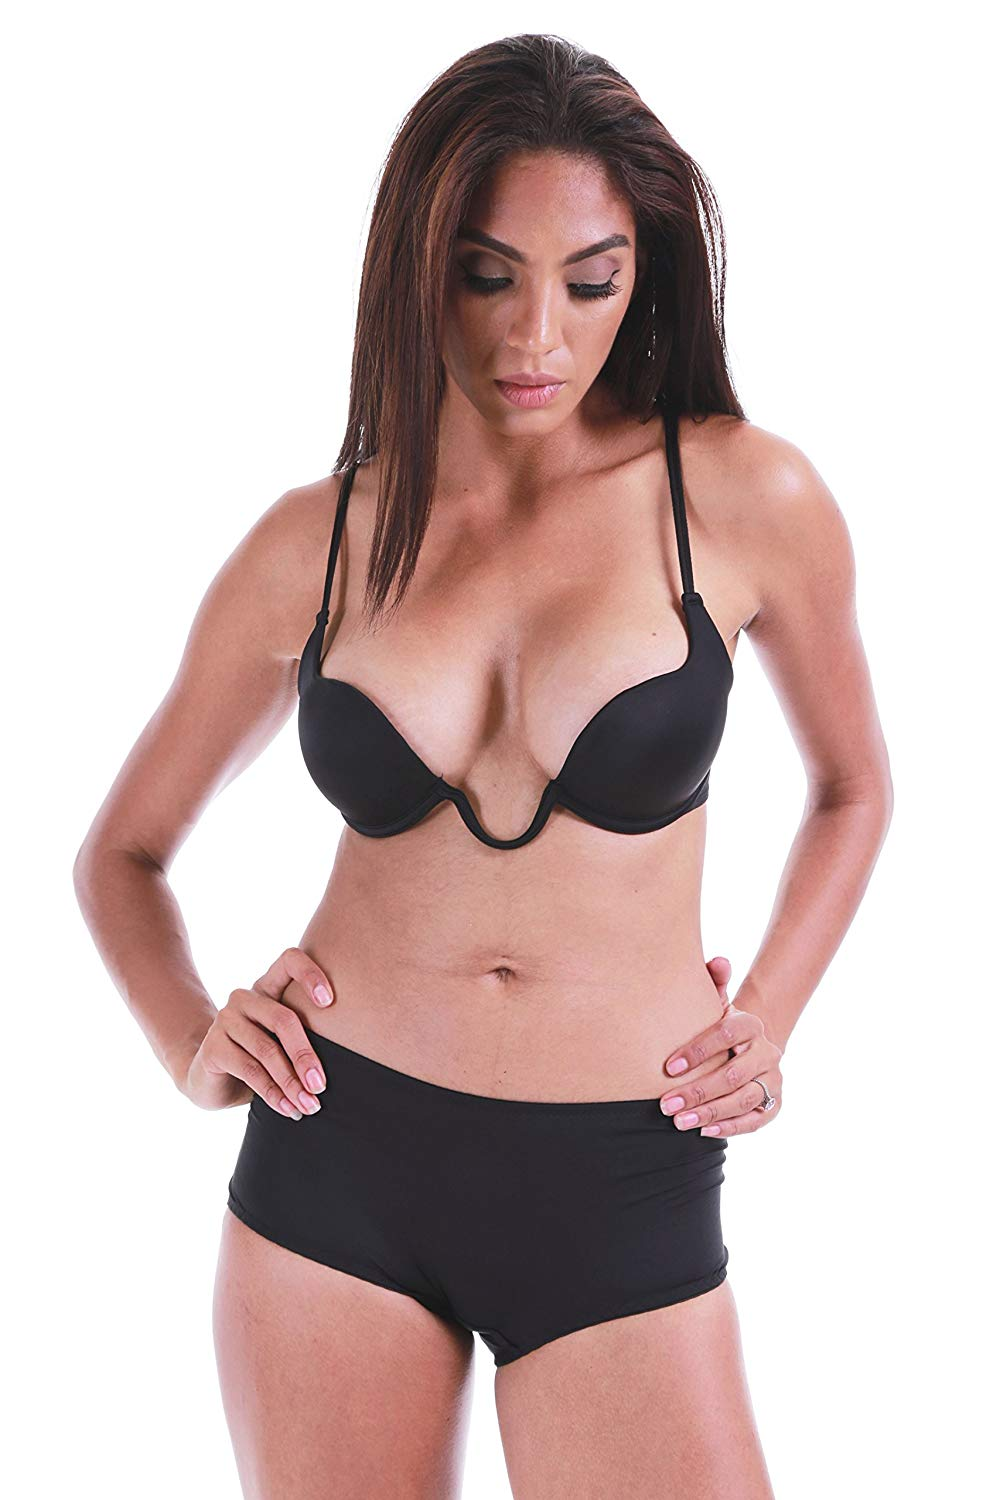 9150130ad4609 Get Quotations · Magic Curves U Deep Plunge Extreme Cleavage Push-Up Demi  Bra (29062)